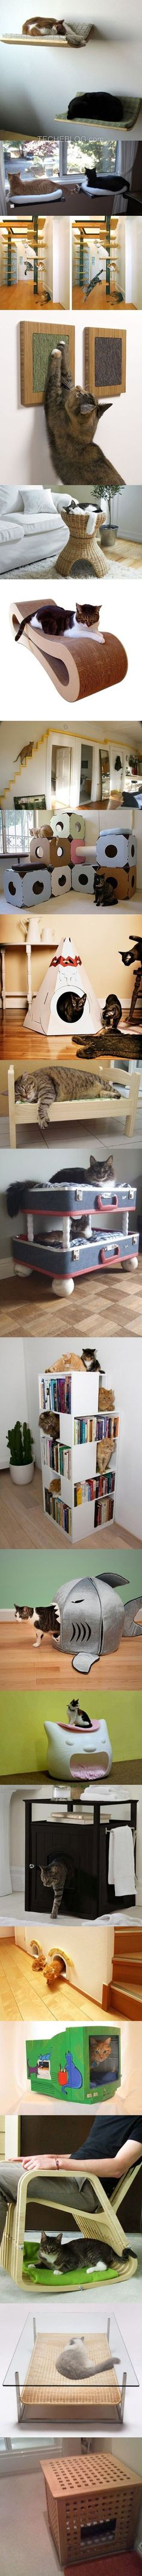 Good ideas for cats I'm going to do stuff for my cat some day